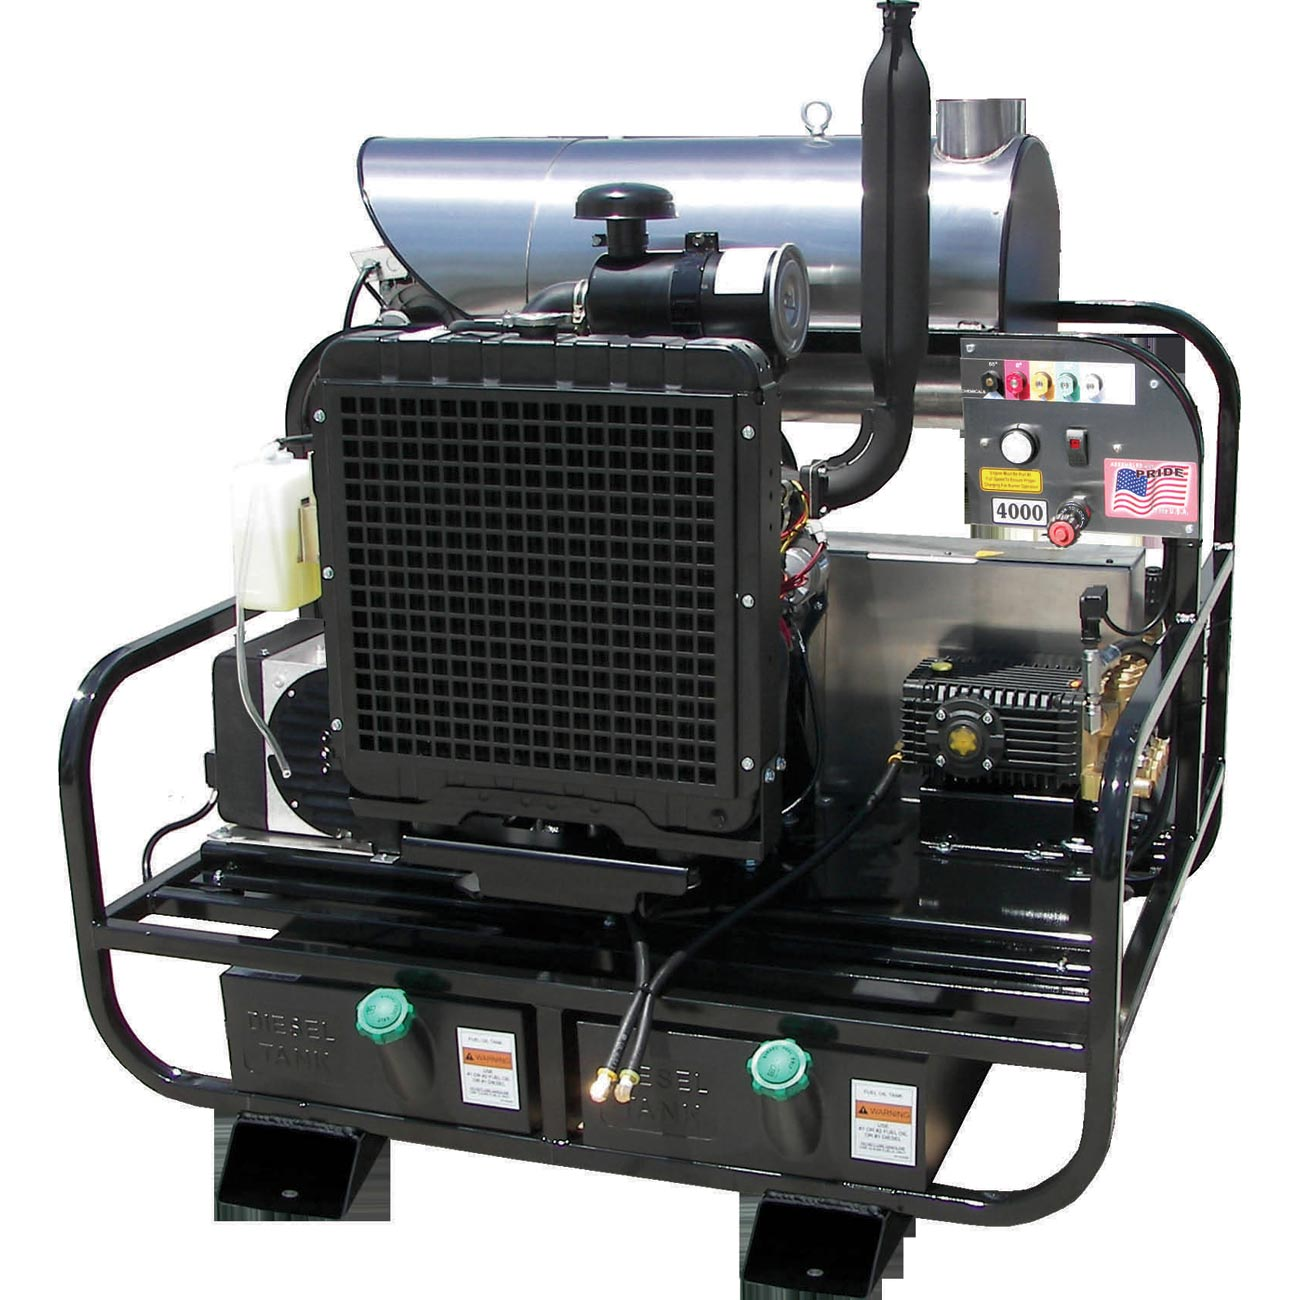 Pressure Pro 6115PRO-40KDG  Diesel Hot Water Skid 4000psi 5.5 gpm Kubota Engine Freight Included 2500 Watt Generator General pump